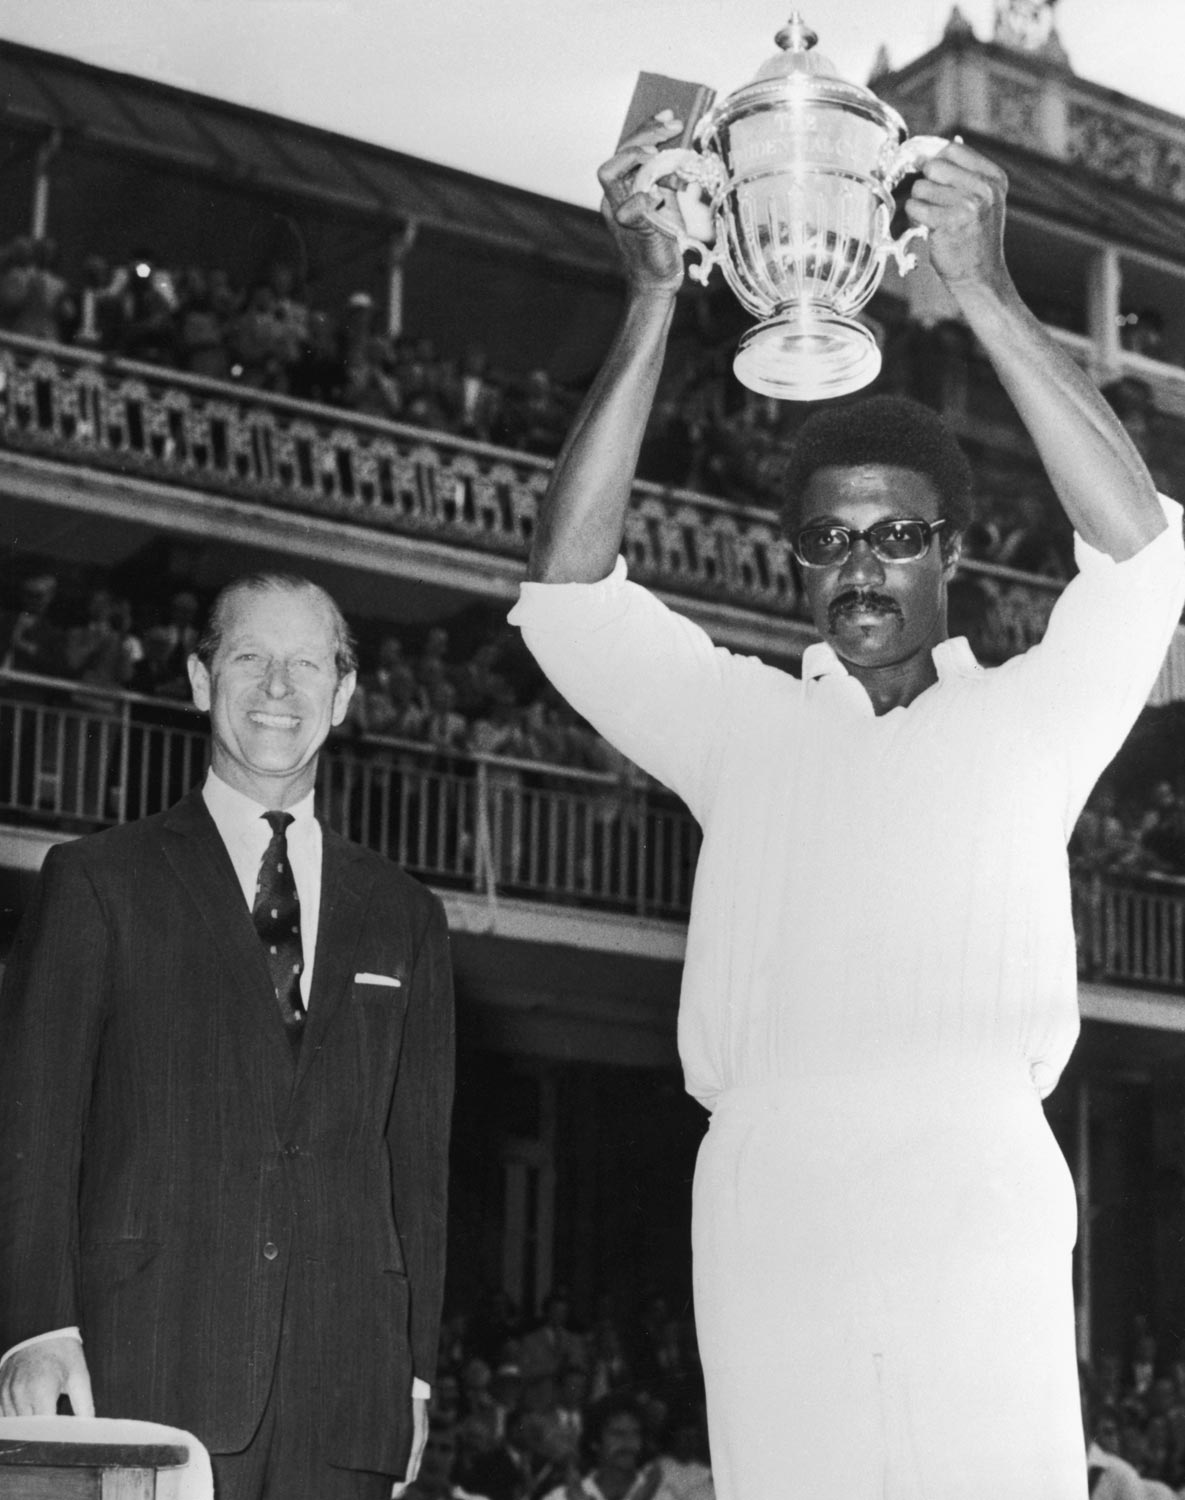 West Indies captain Clive Lloyd lifts the trophy at the 1975 Cricket World Cup, as MCC president Prince Philip, the Duke of Edinburgh, looks on. Photo by Keystone/Hulton Archive/Getty Images